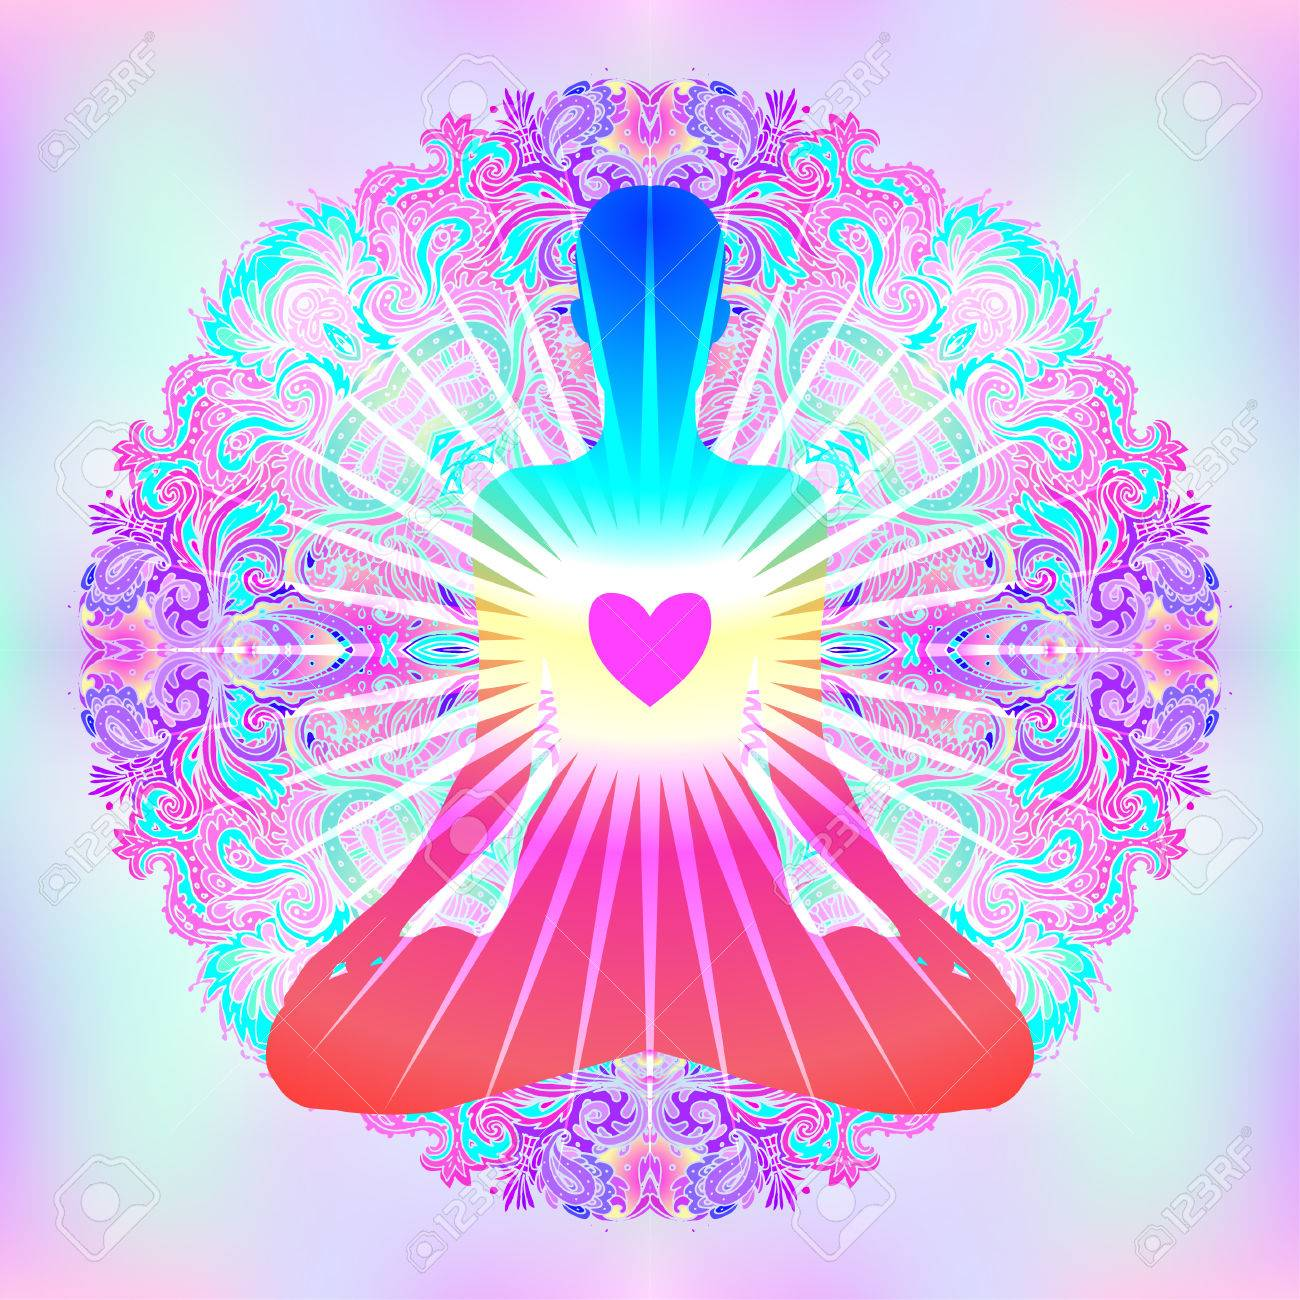 Heart Chakra concept. Inner love, light and peace. Silhouette in lotus position over colorful ornate mandala. Vector illustration isolated on white. Buddhism esoteric motifs. Tattoo, spiritual yoga. - 79141492